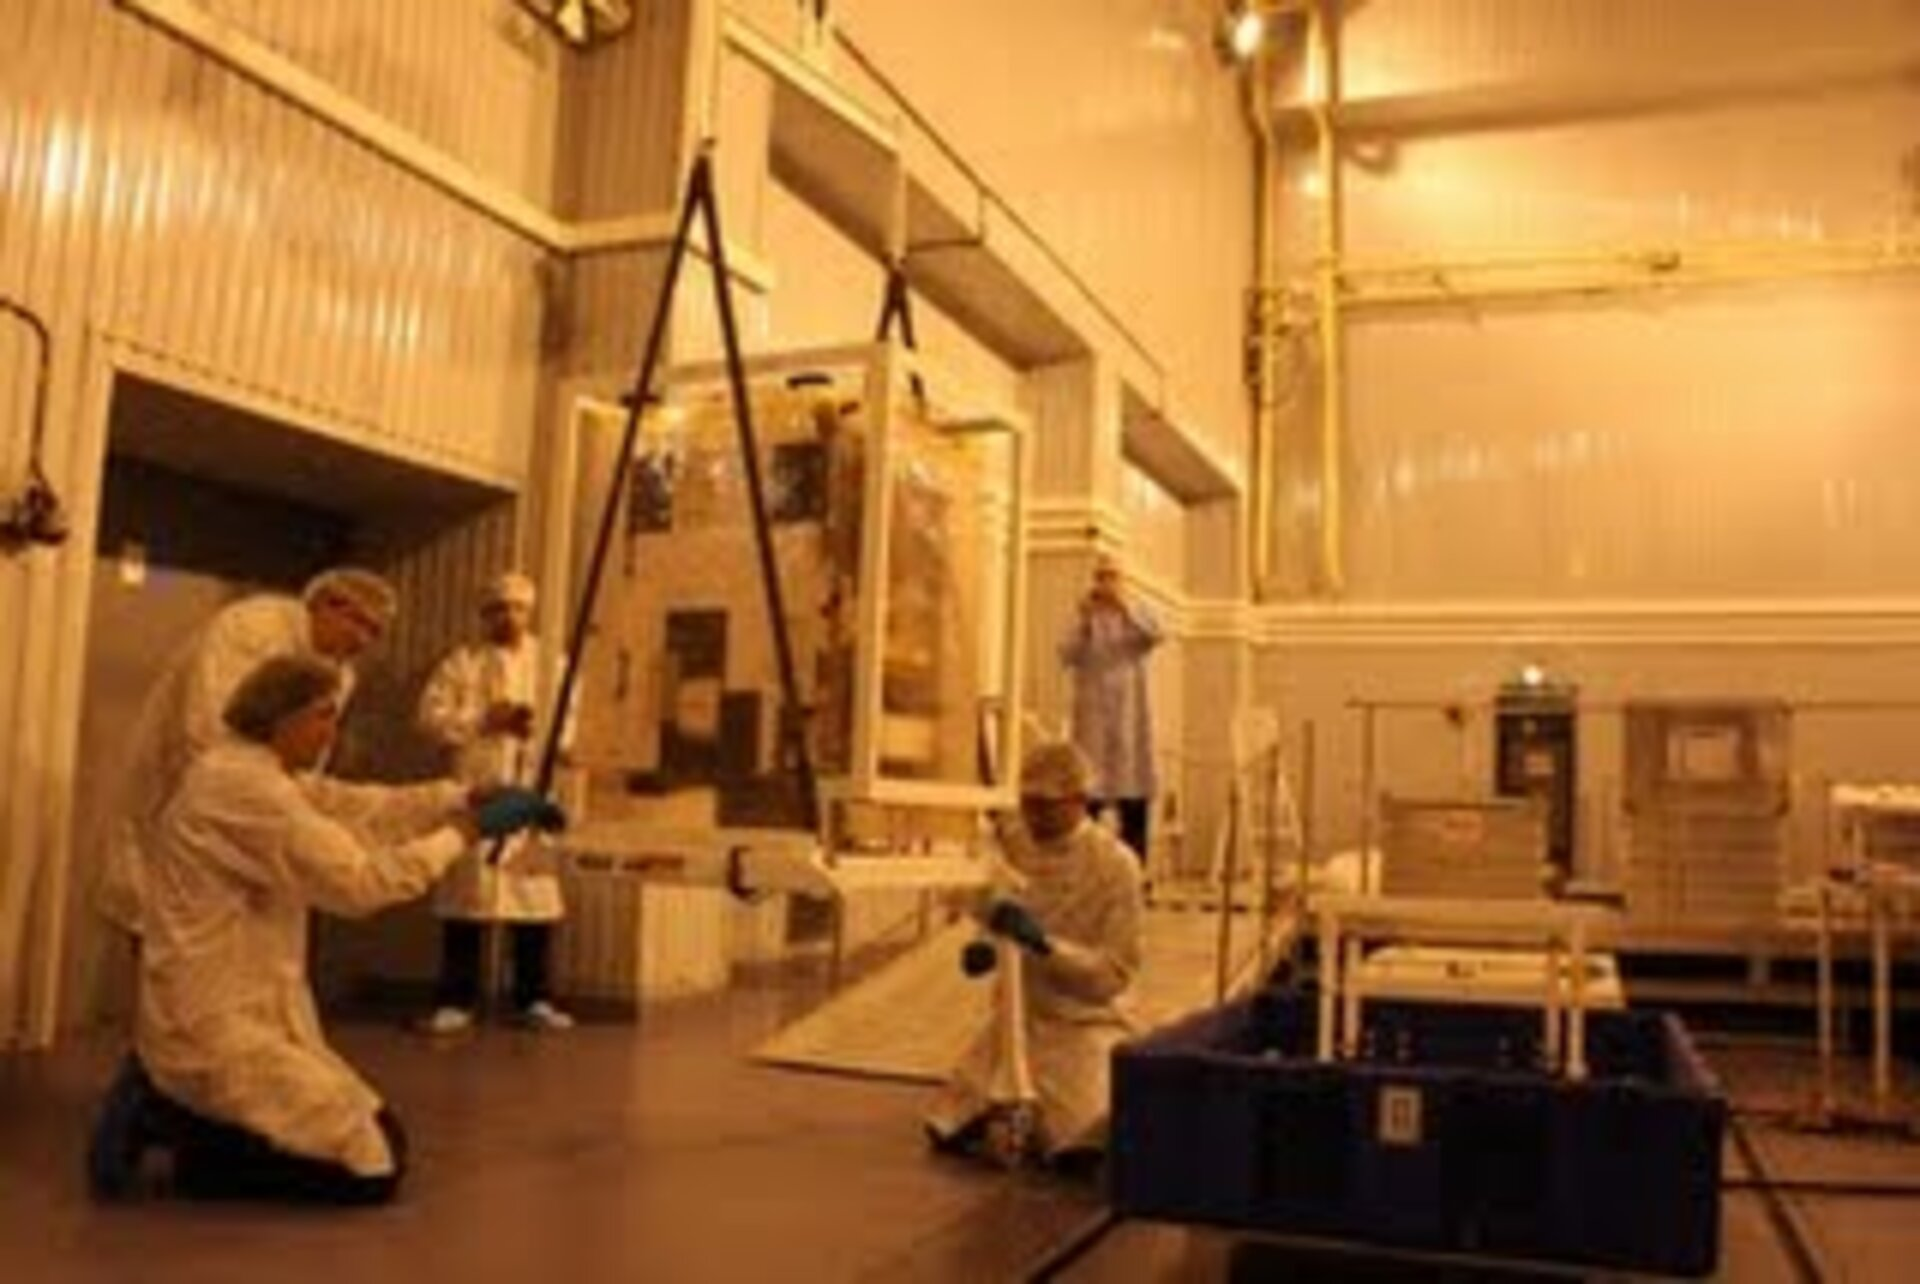 Hoisting of satellite from its container and assembly of integration dolly